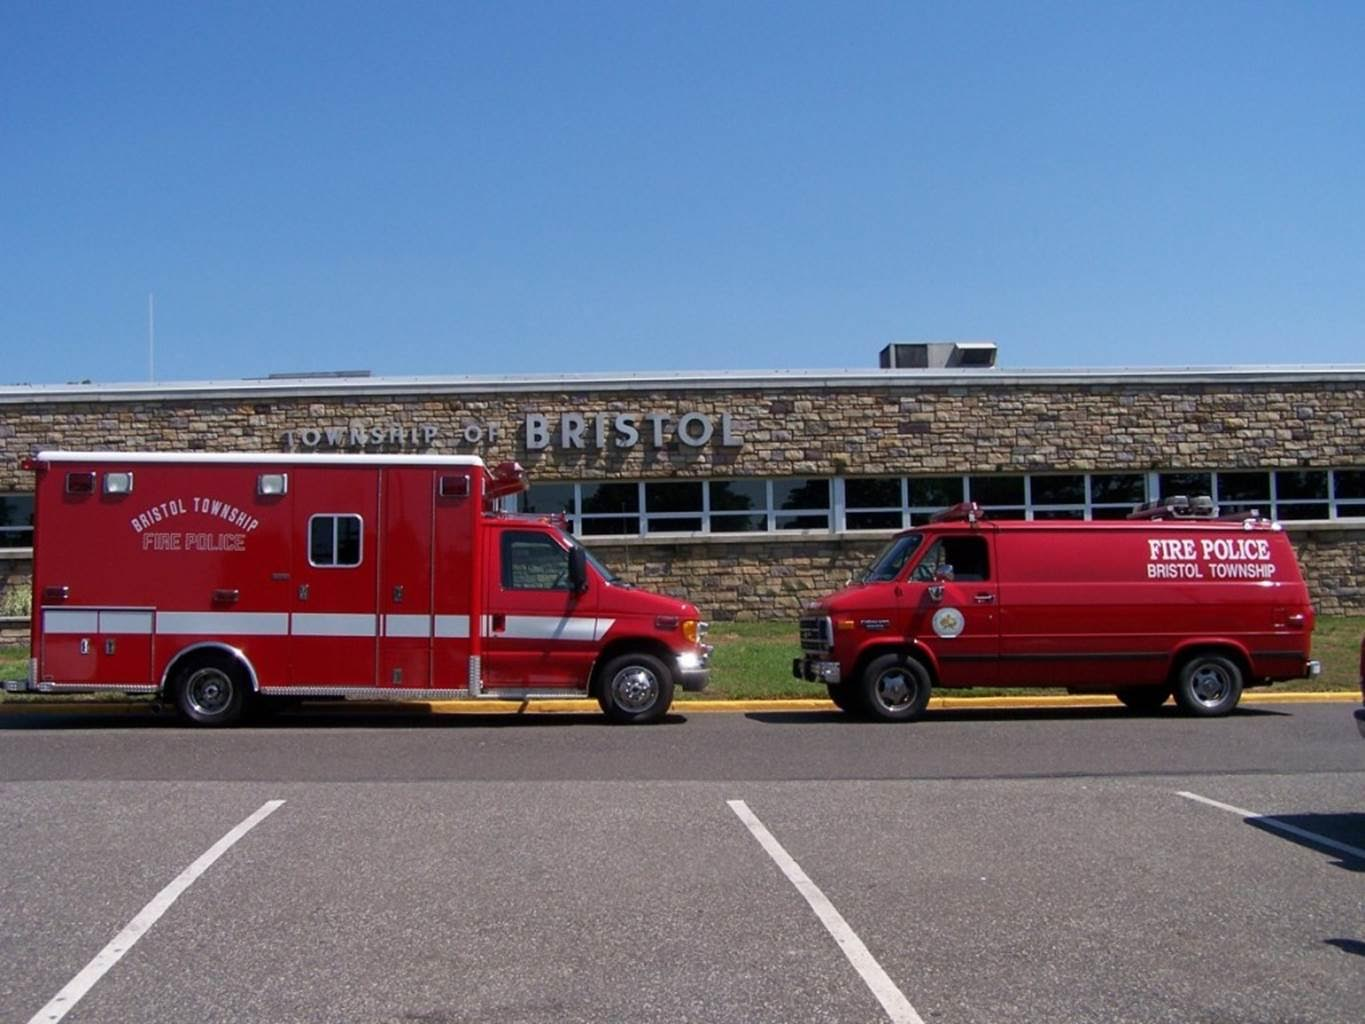 Bristol Township Fire Police Units